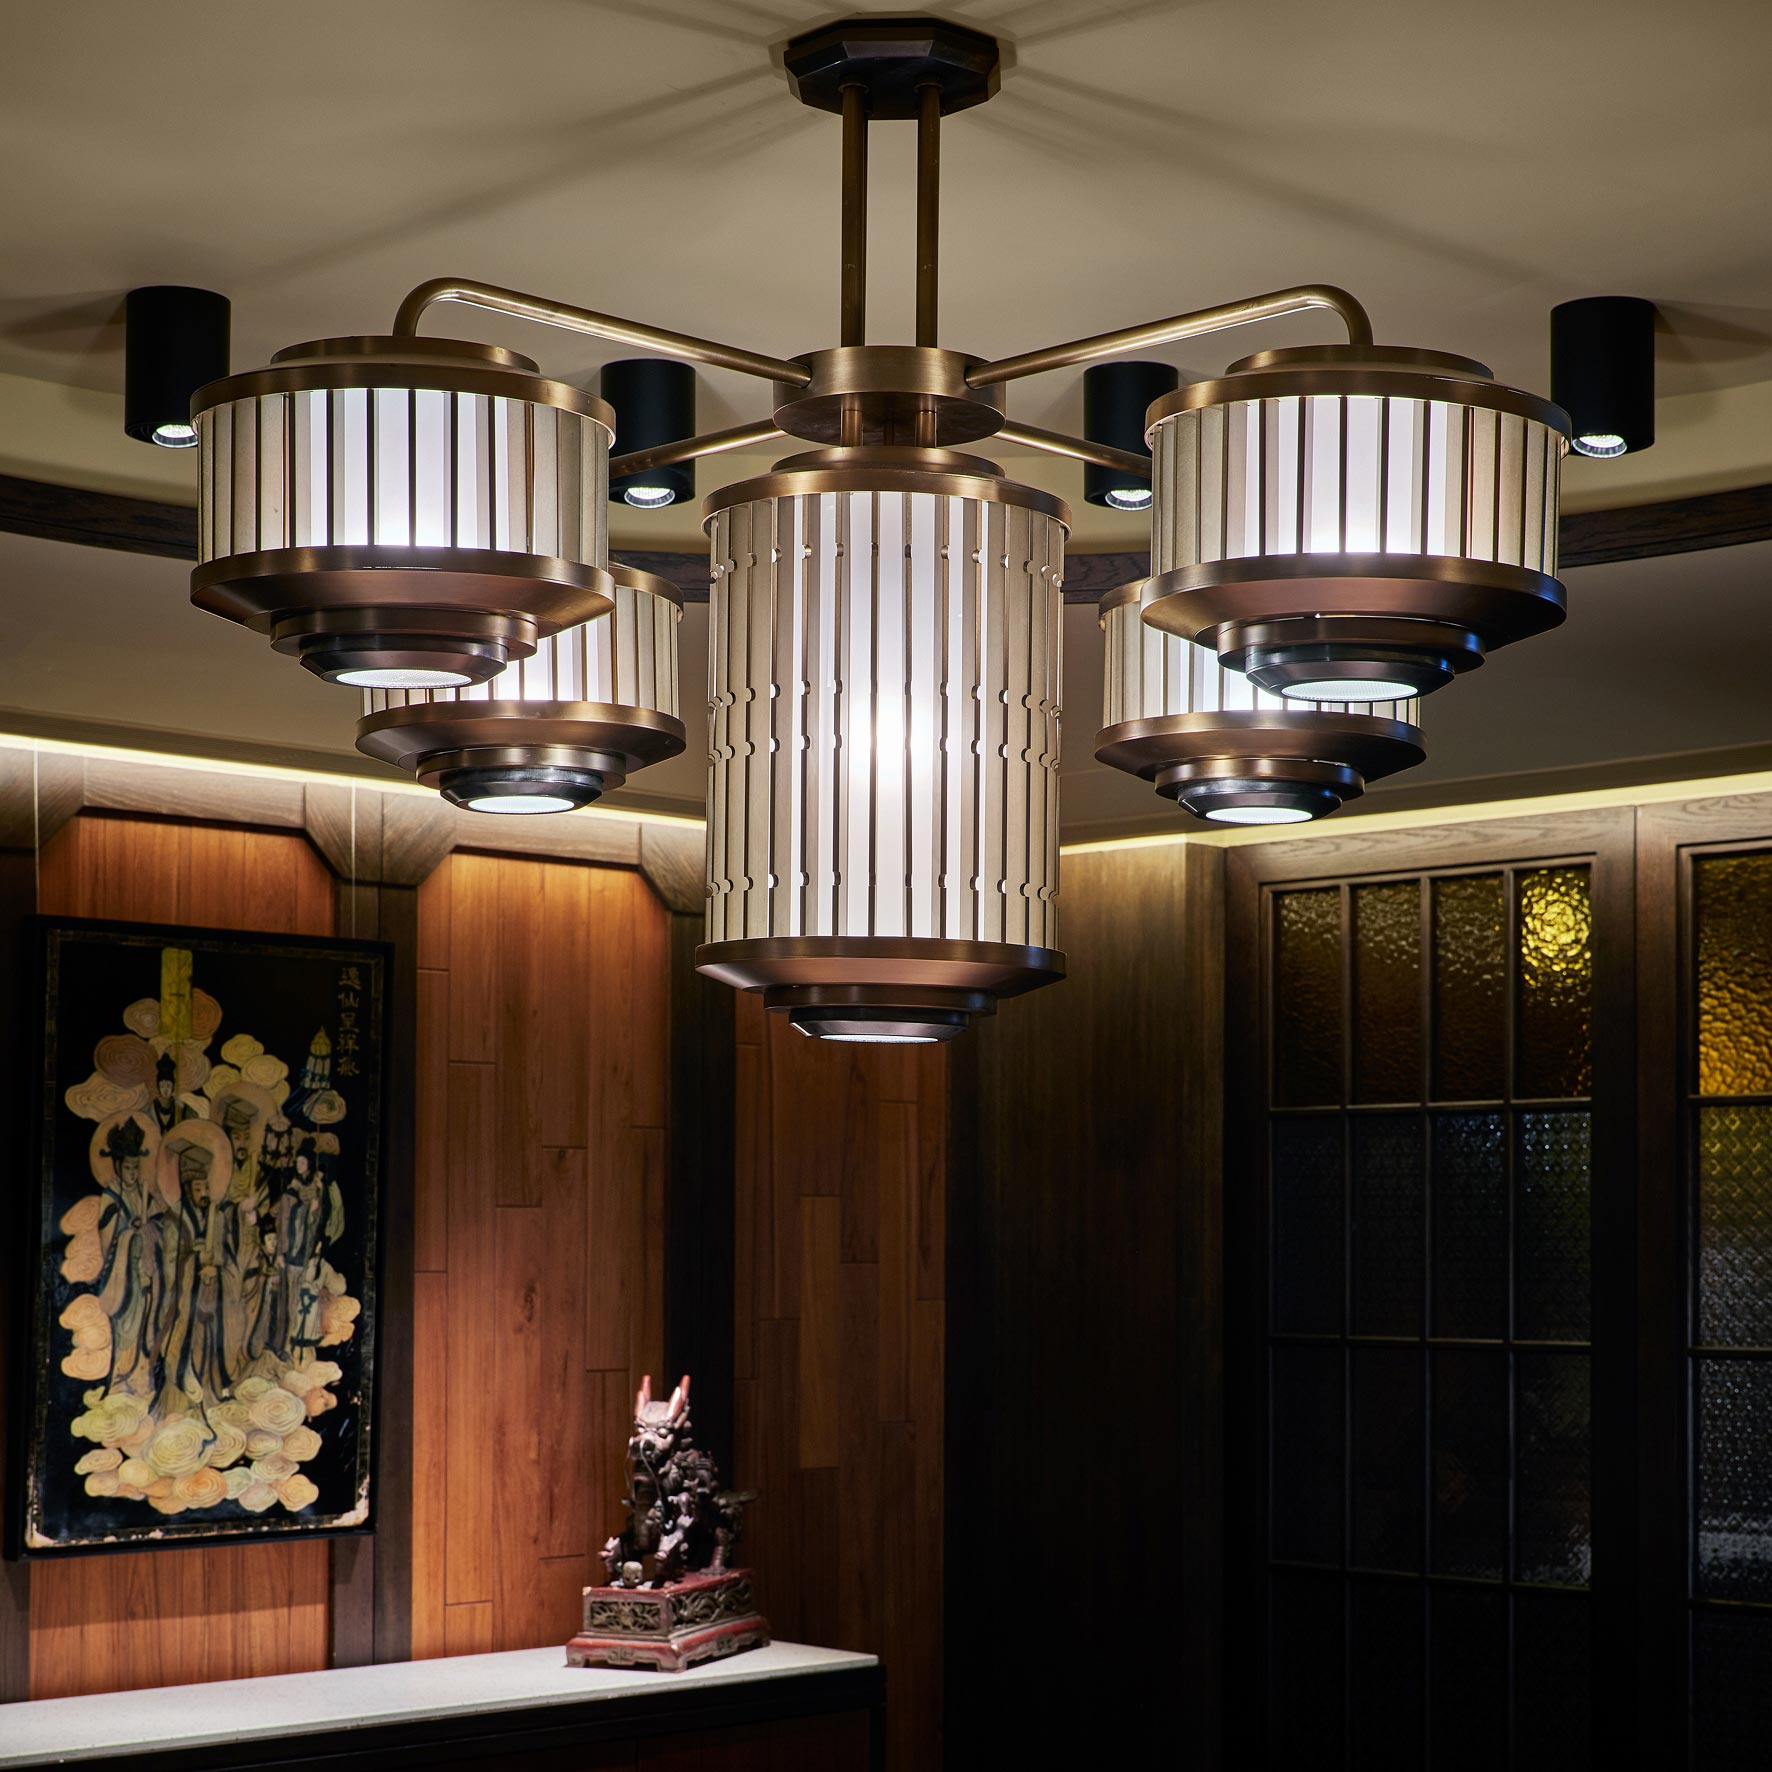 Eaton Hotel Hong Kong. Architectural photographer Singapore